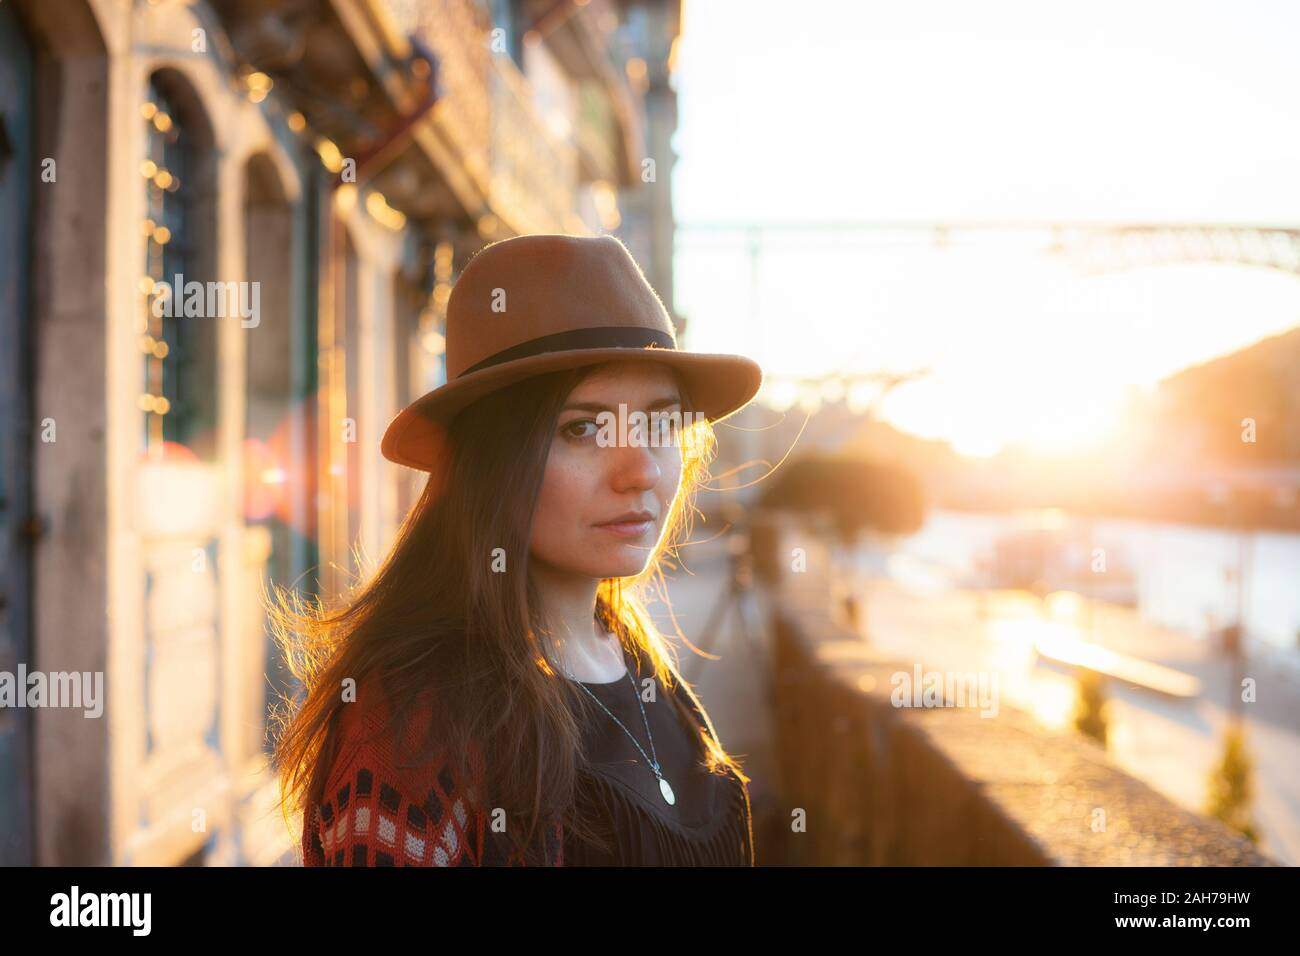 People, travel, holidays and adventure concept. Young woman with long hair walking on city street at sunrise, wearing hat and coat, enjoying happy ple Stock Photo